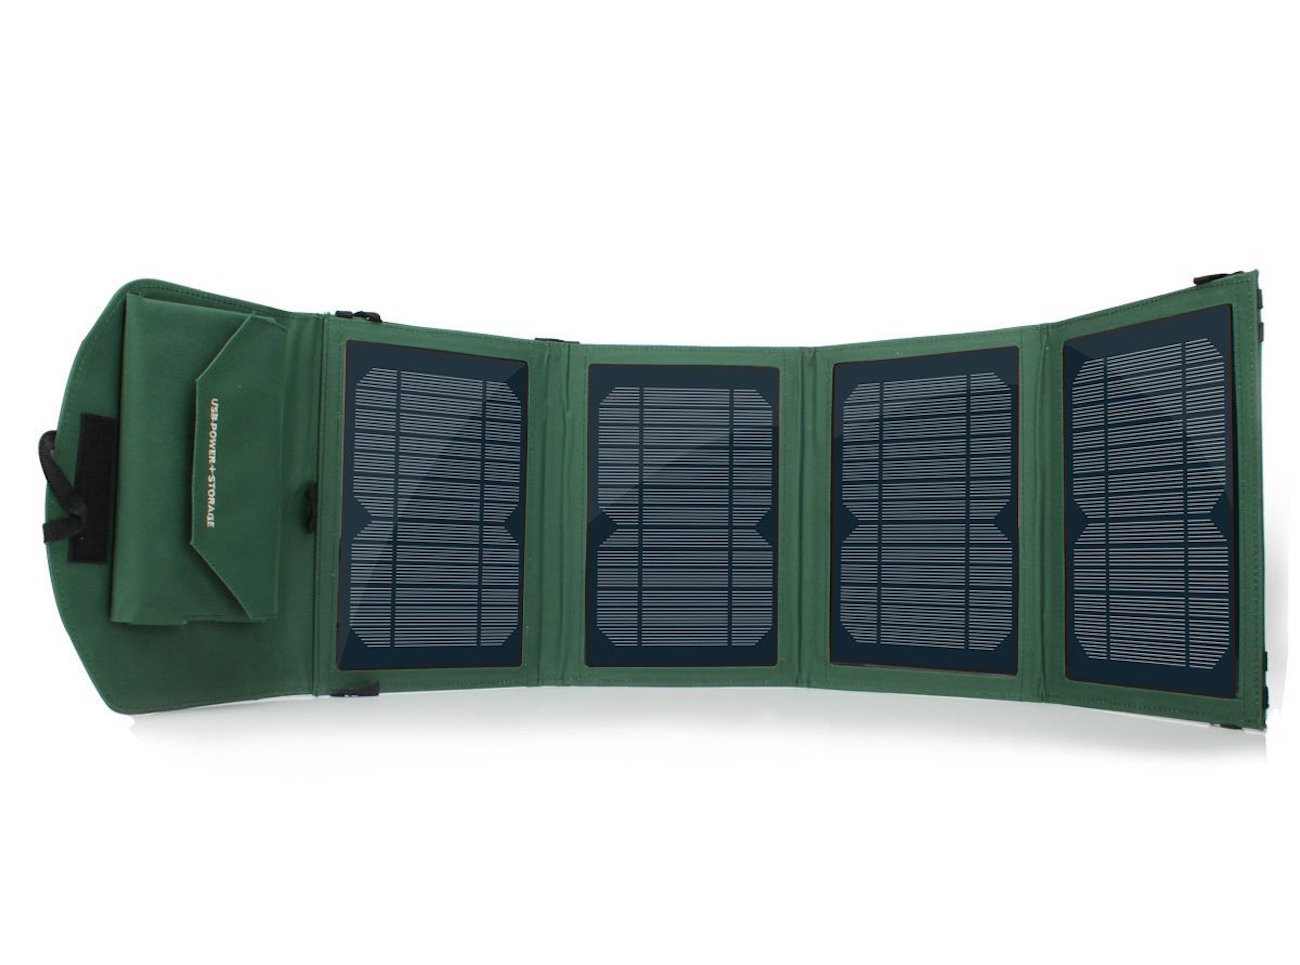 ReVIVE ReStore RA 4 – 14 Watt Folding Solar Charger